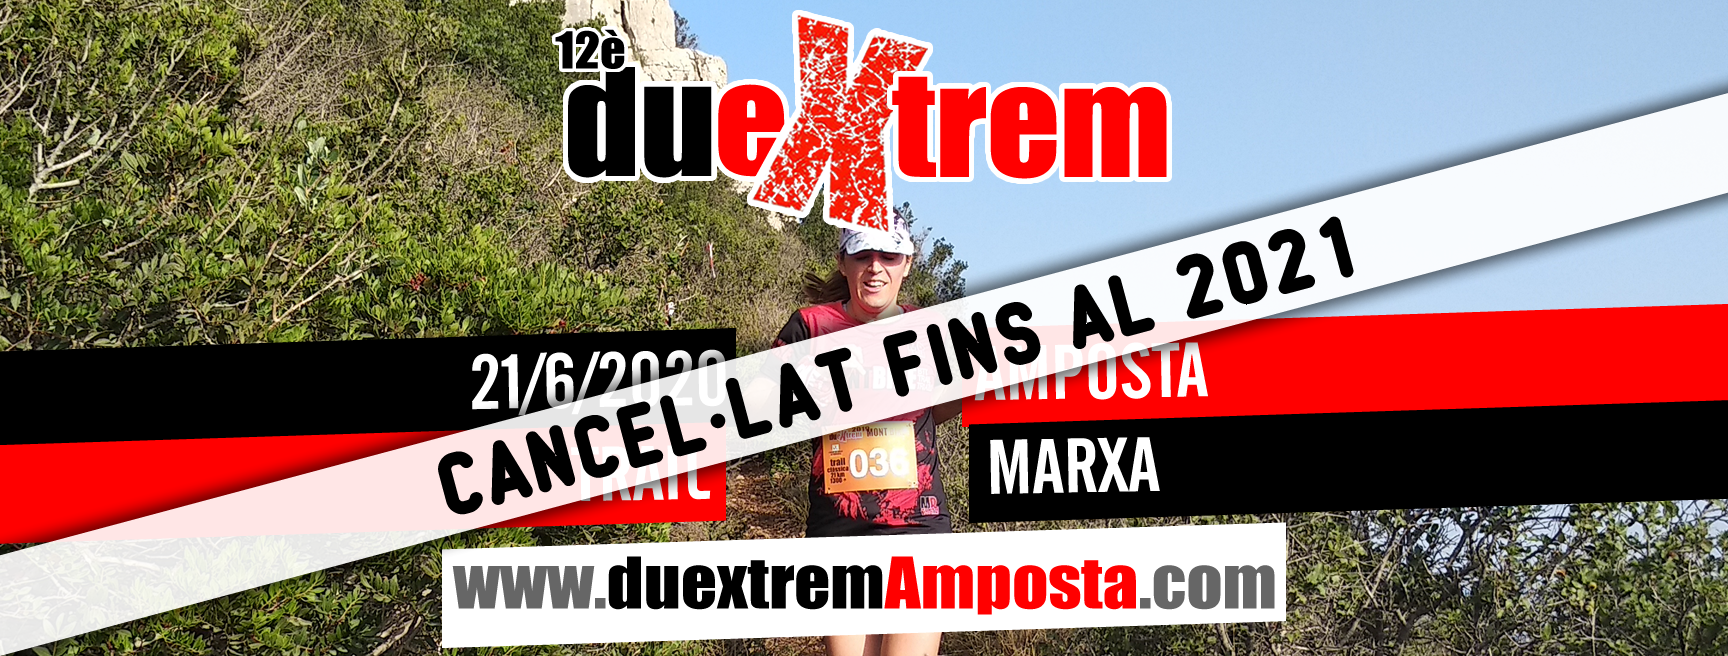 Duextrem Amposta Trail 2020 CANCEL·LAT